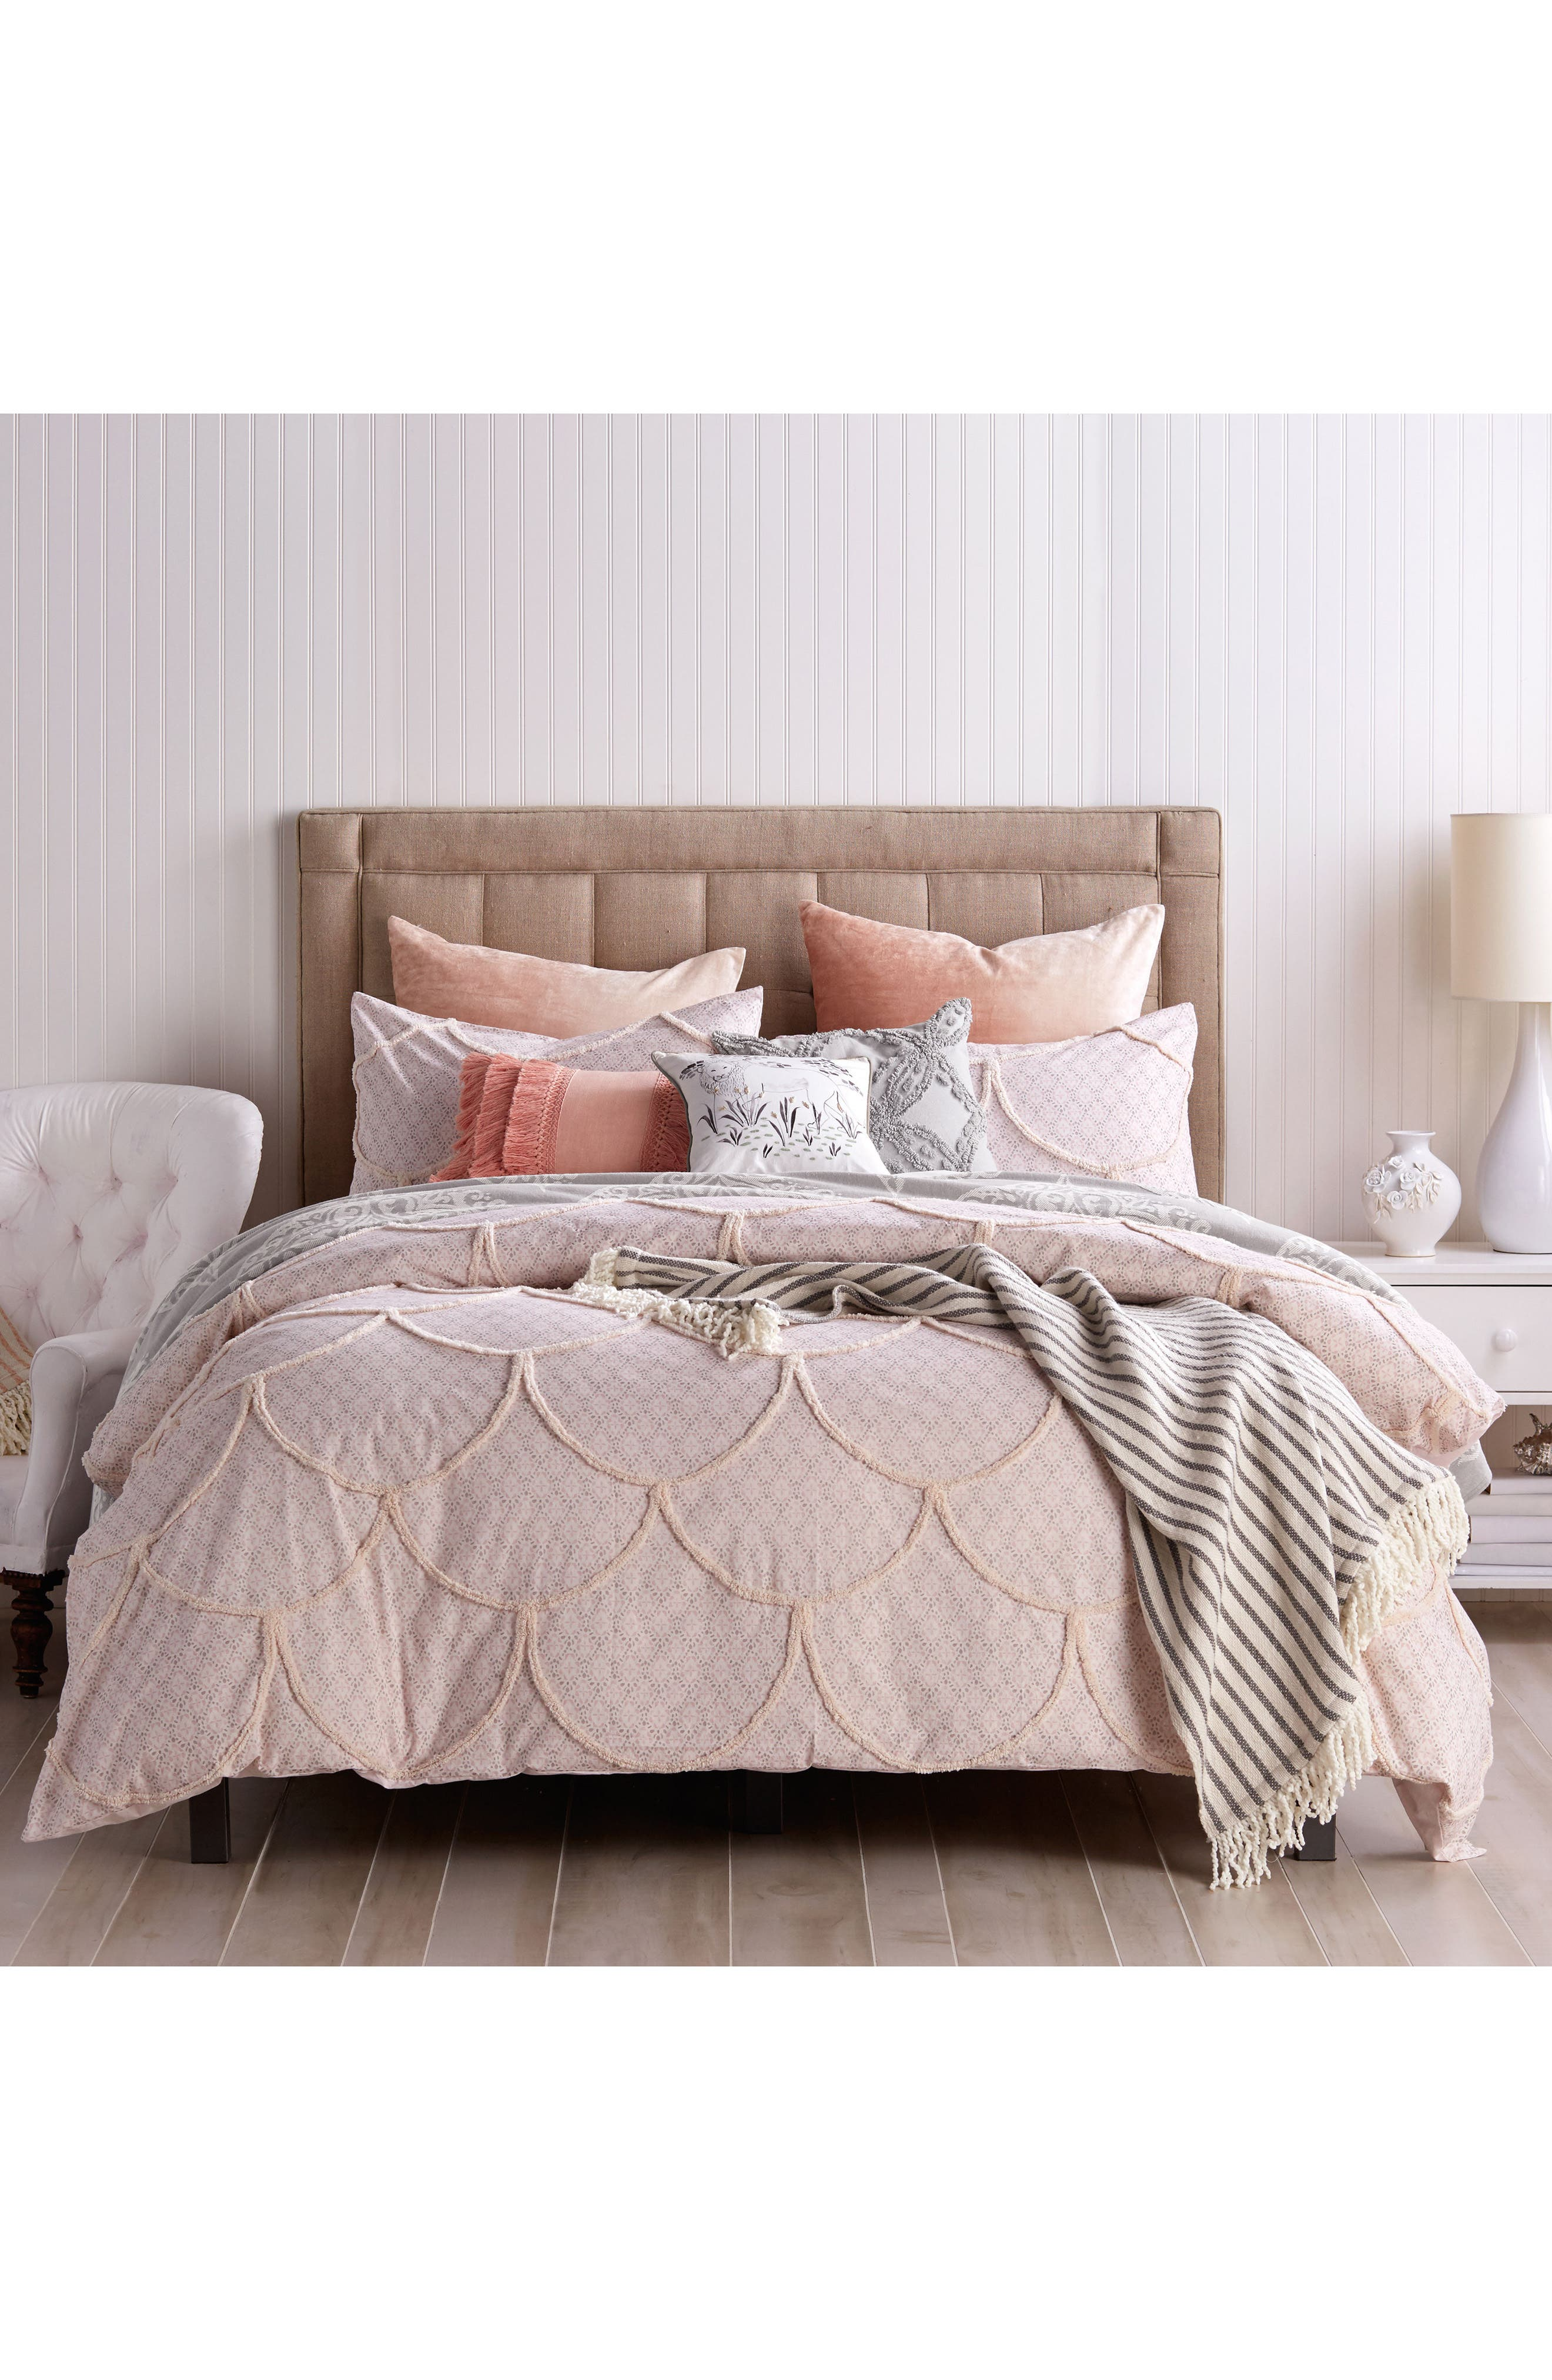 Chenille Scallop Duvet Cover,                             Main thumbnail 1, color,                             BLUSH